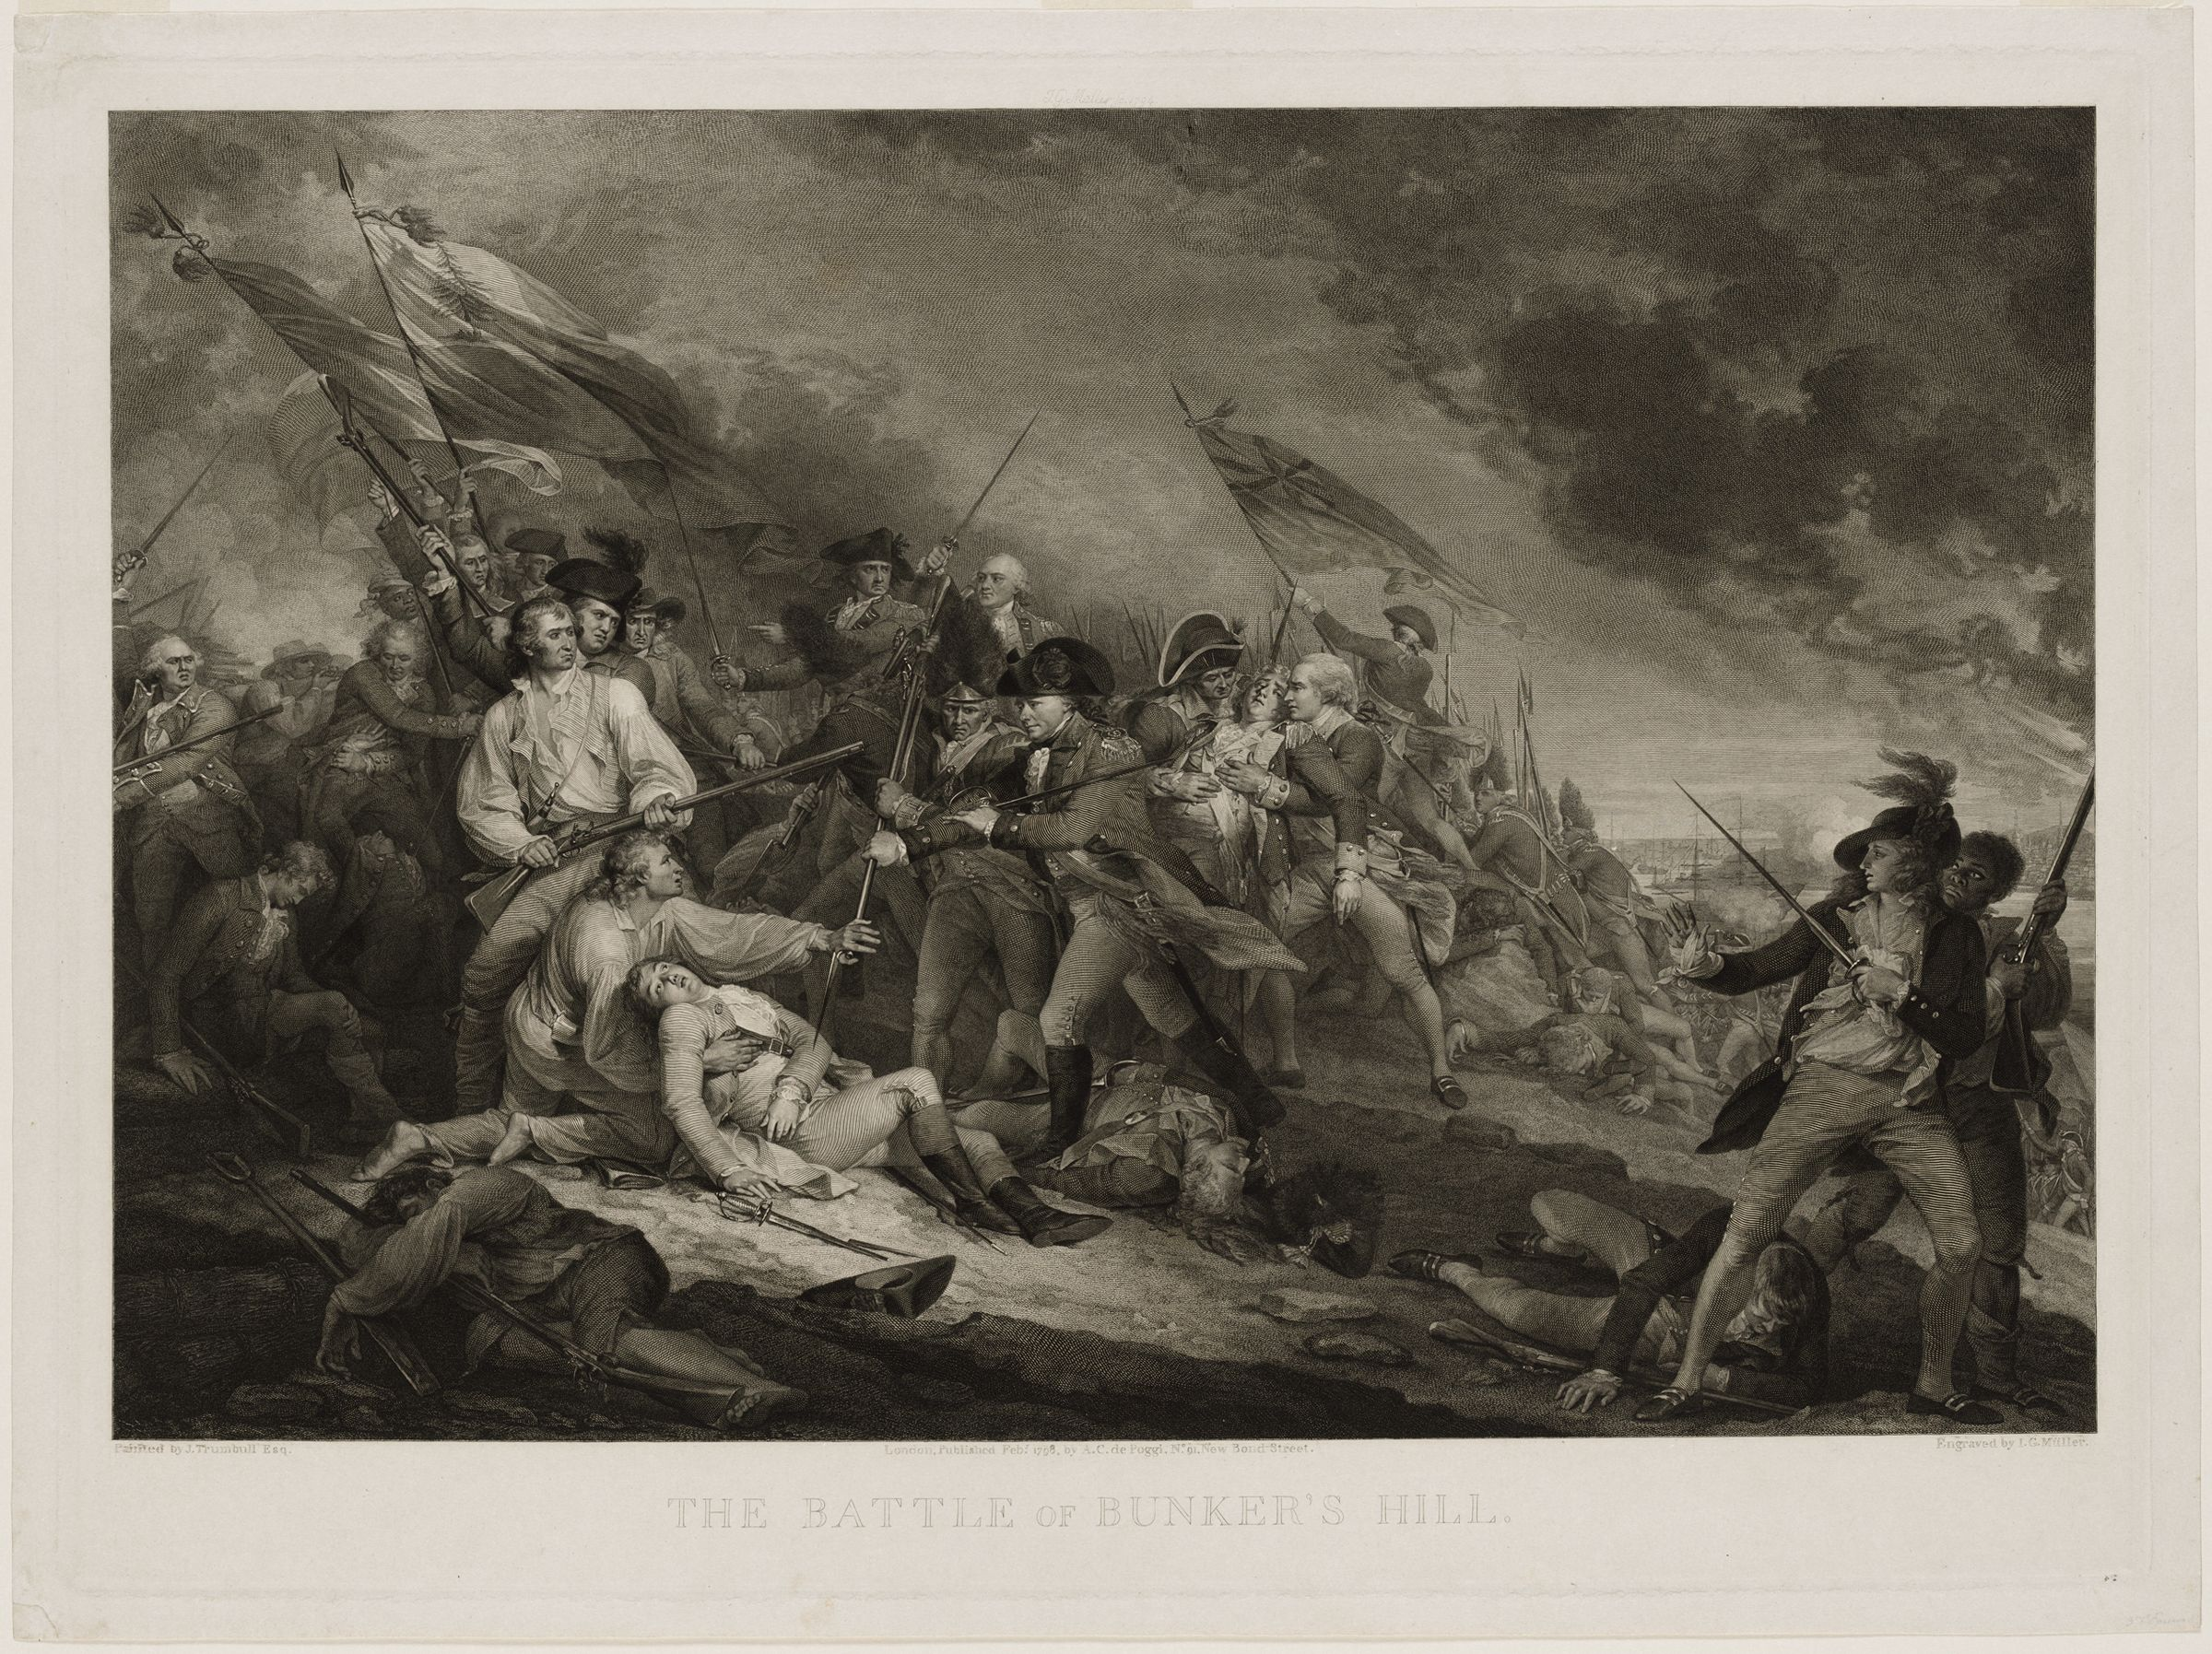 Battle Of Bunker's Hill